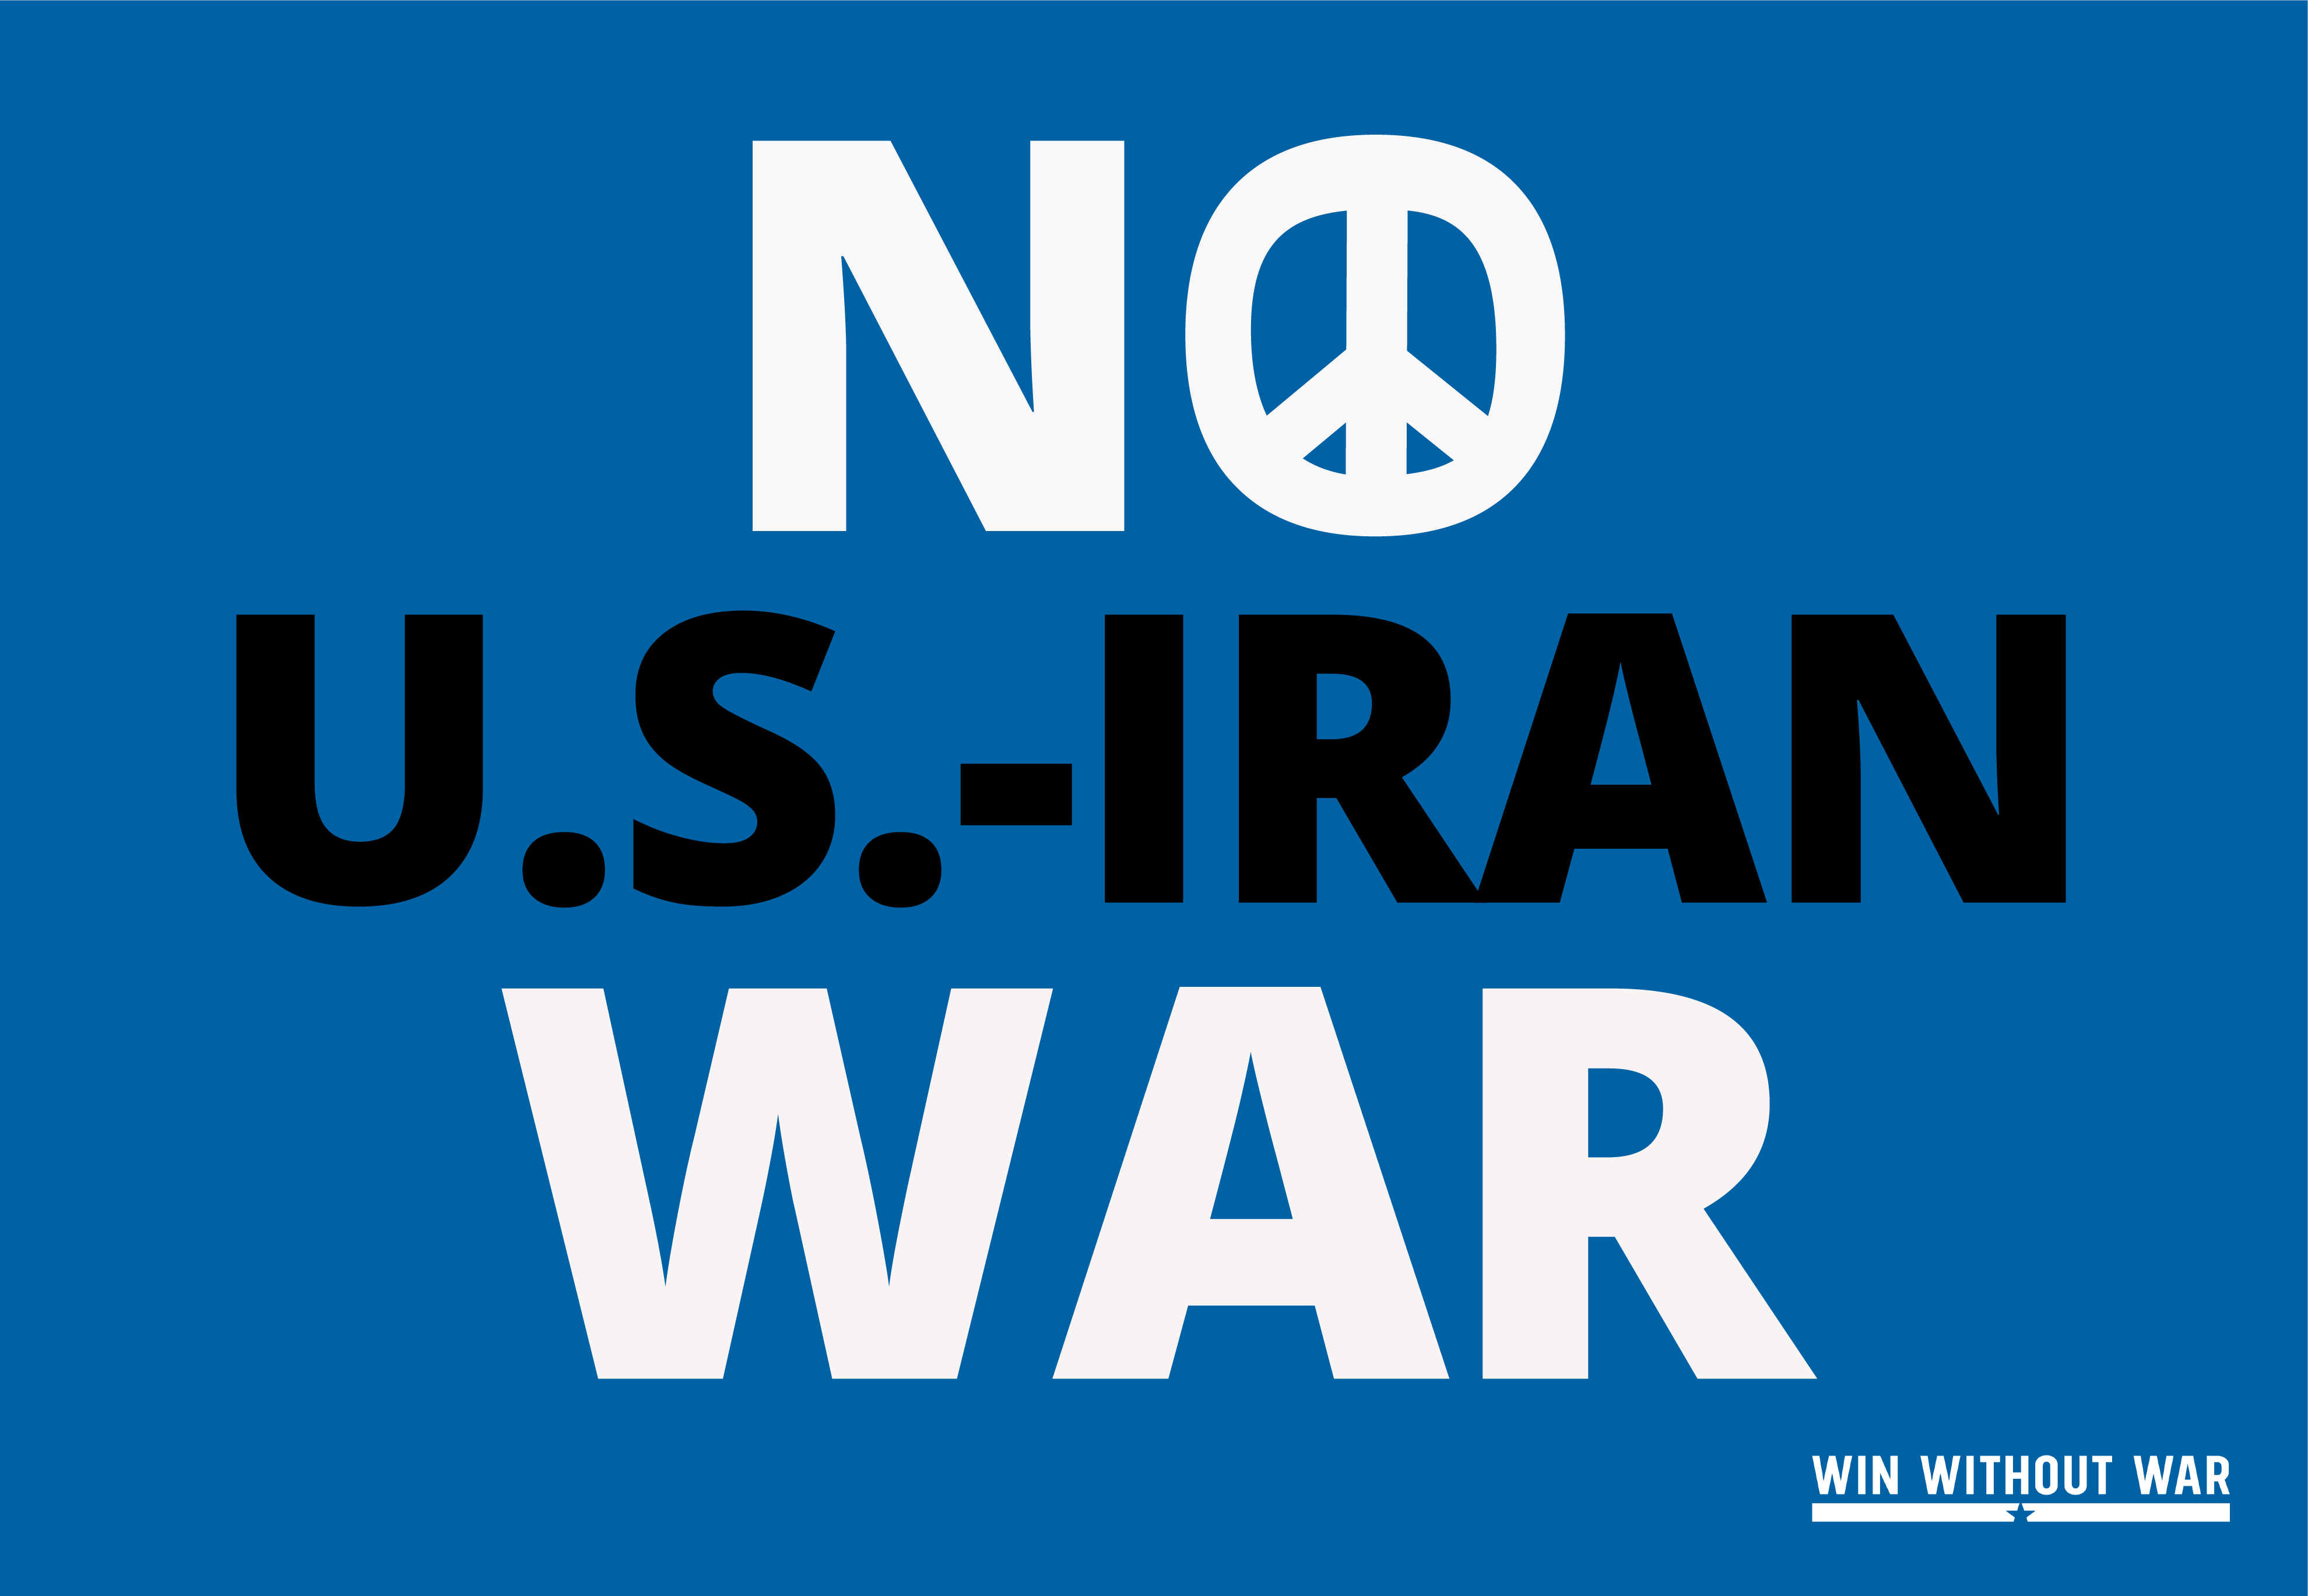 Tell the Senate: No War with Iran!